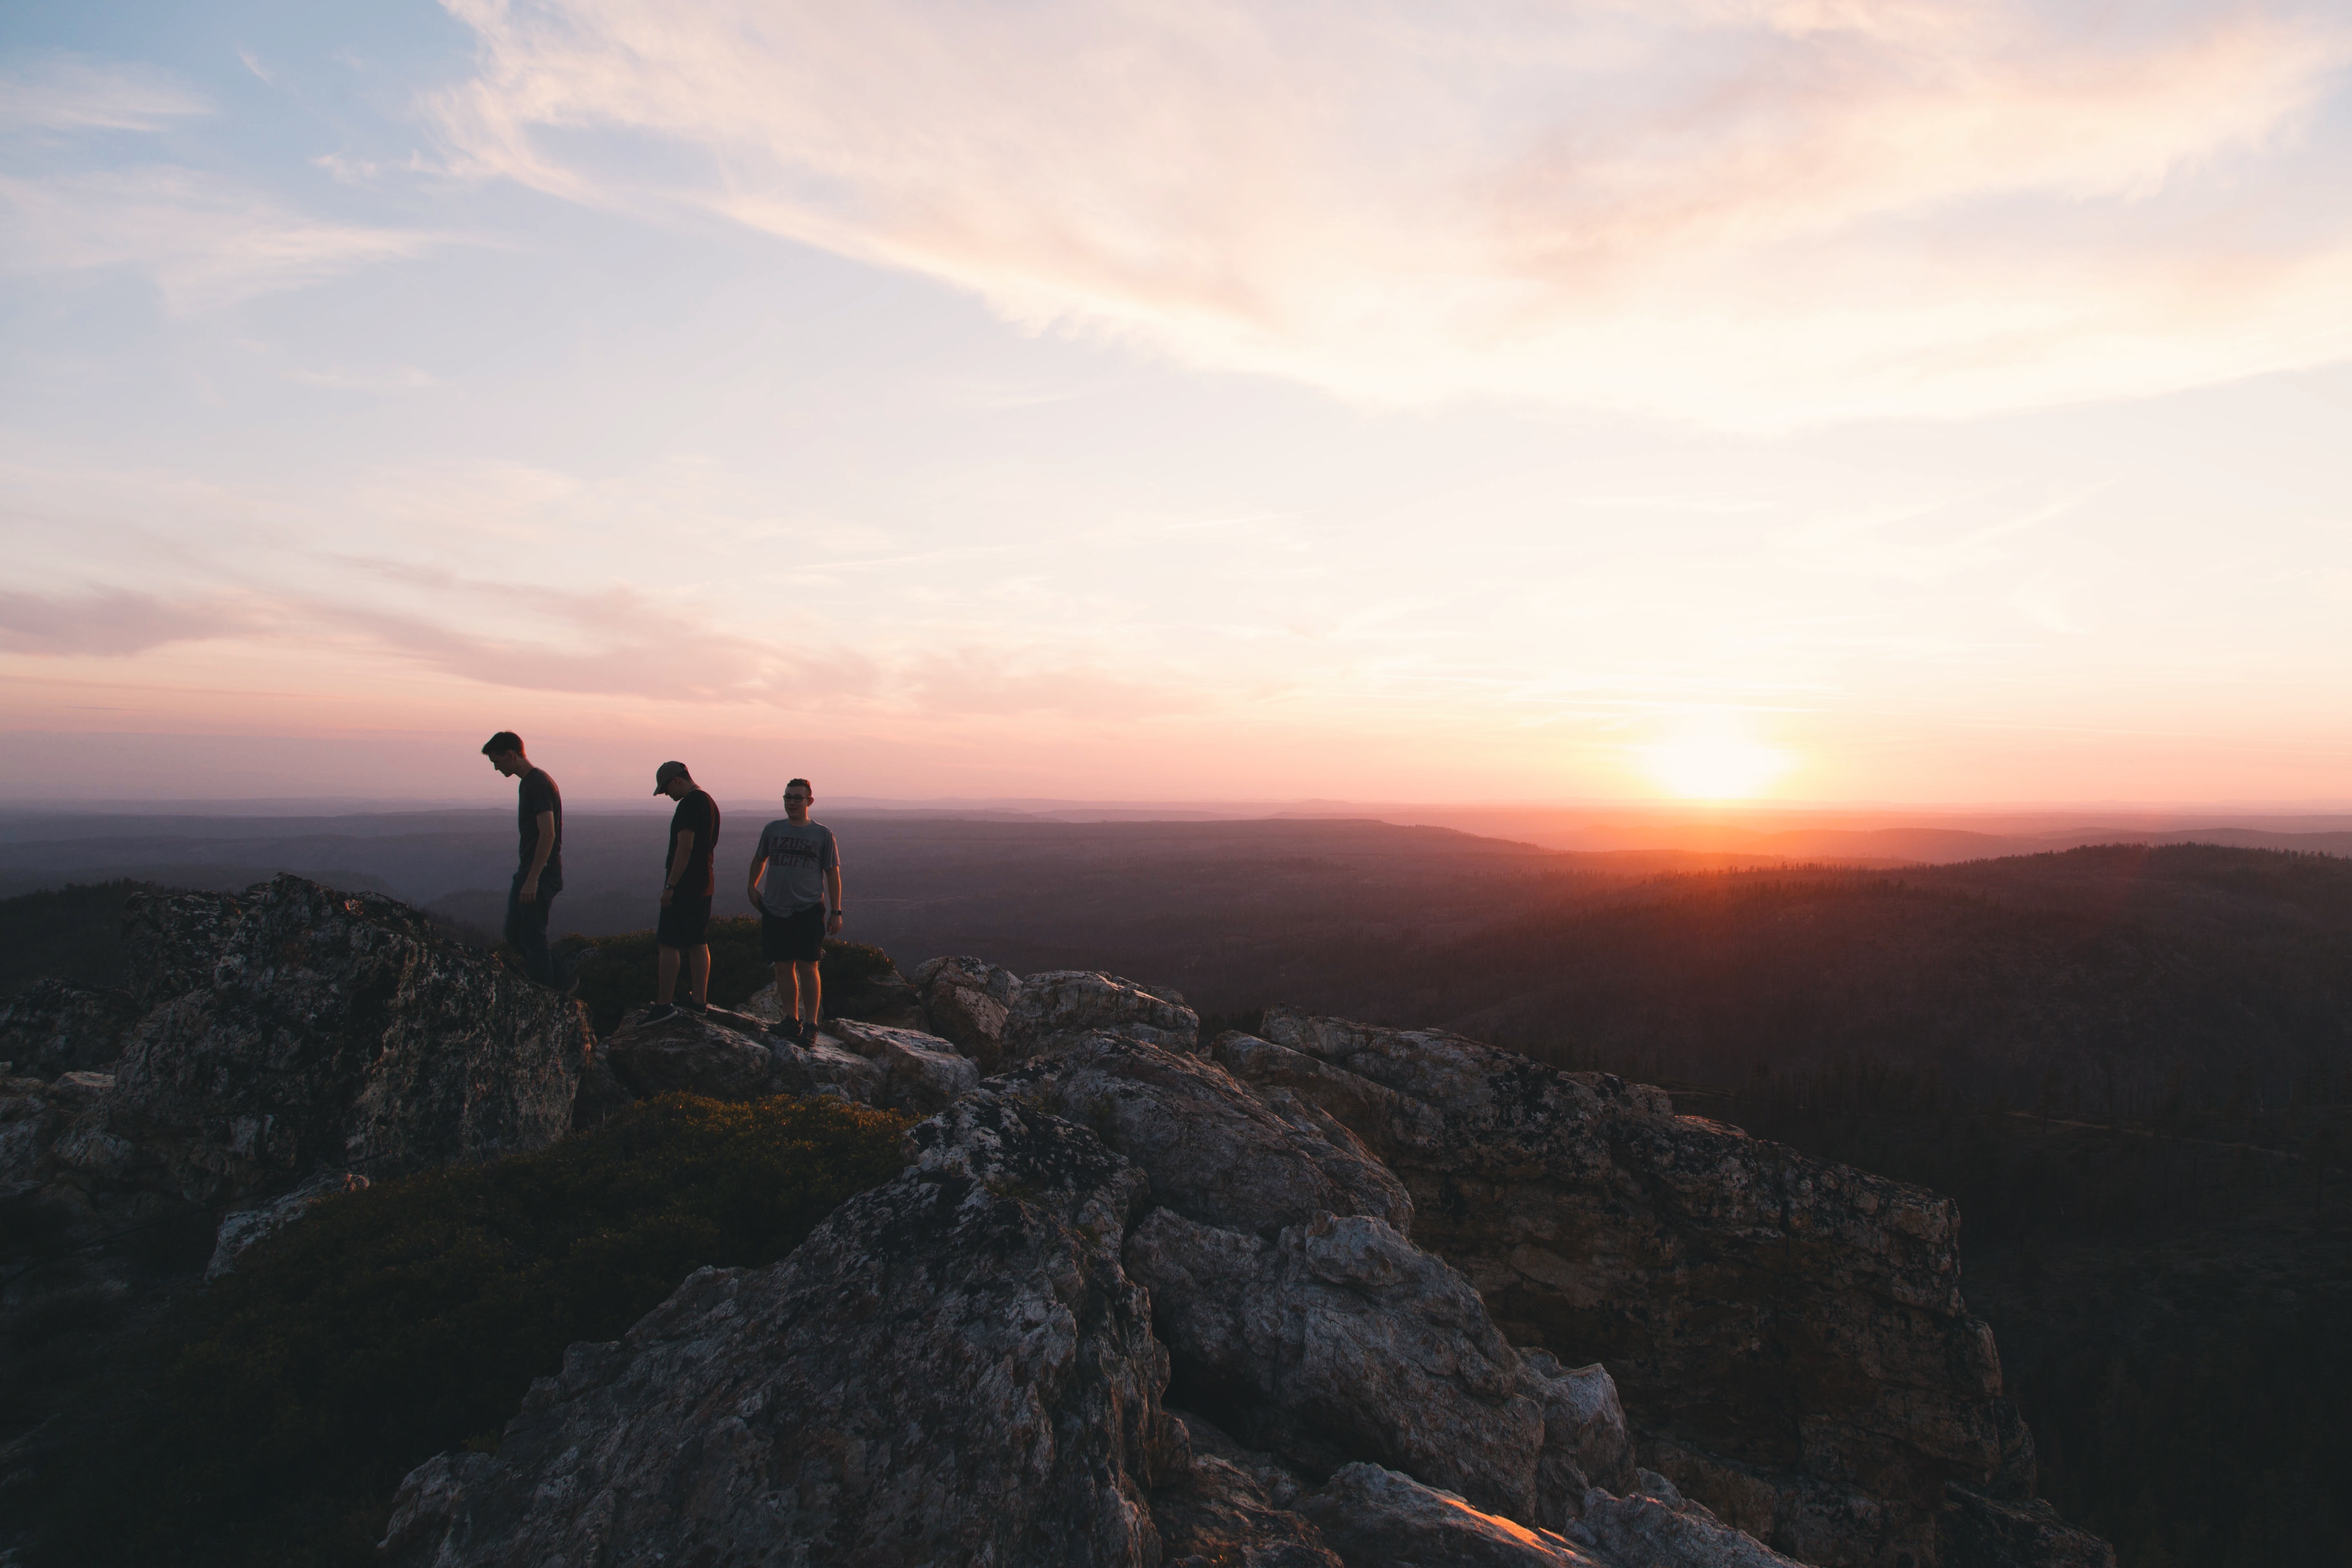 three person standing on mountain during daytime